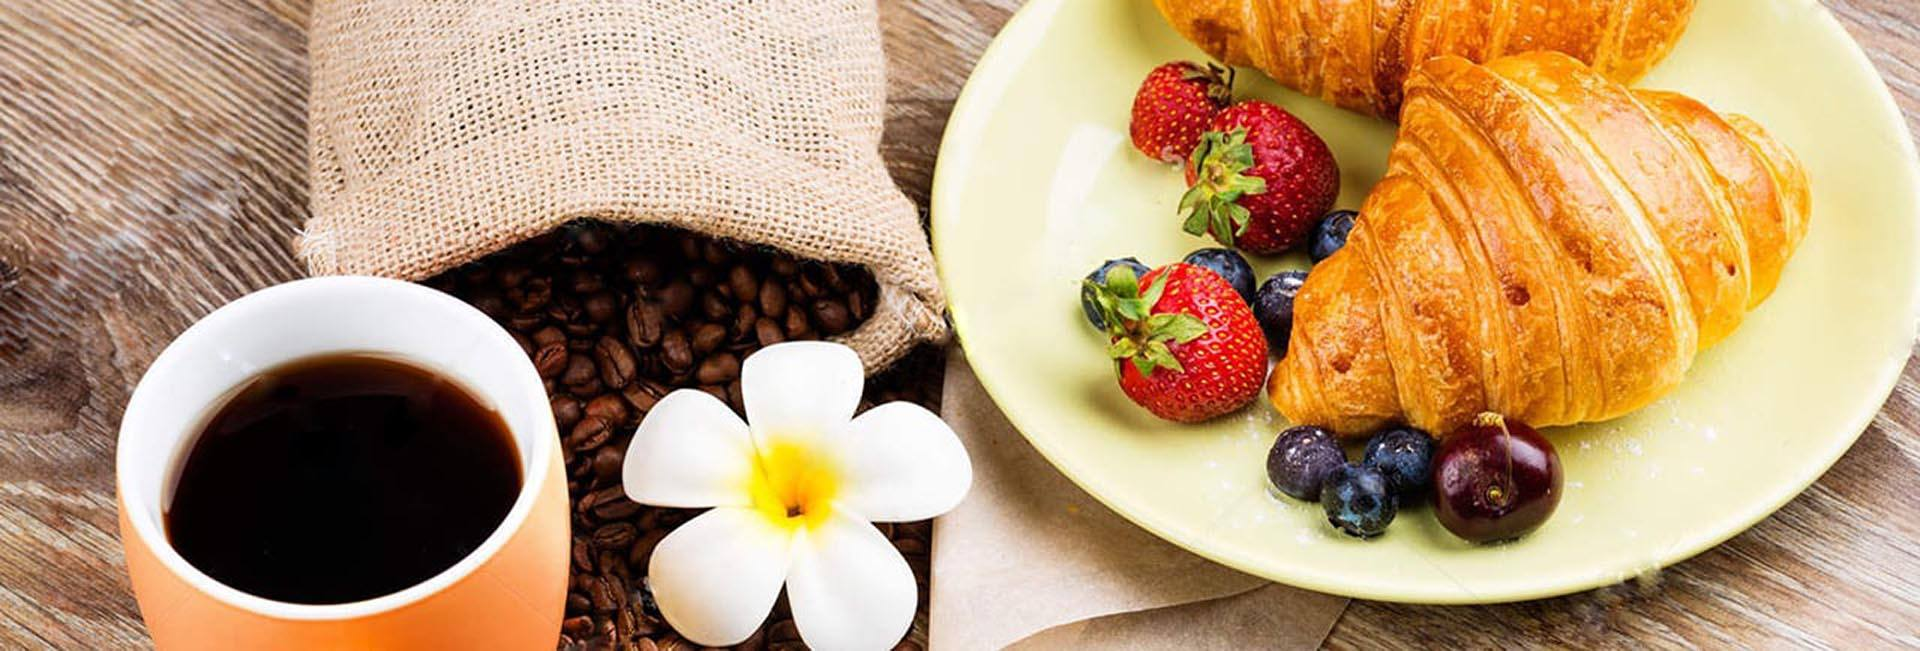 strawberries and blueberries with breads on white ceramic plate near coffee